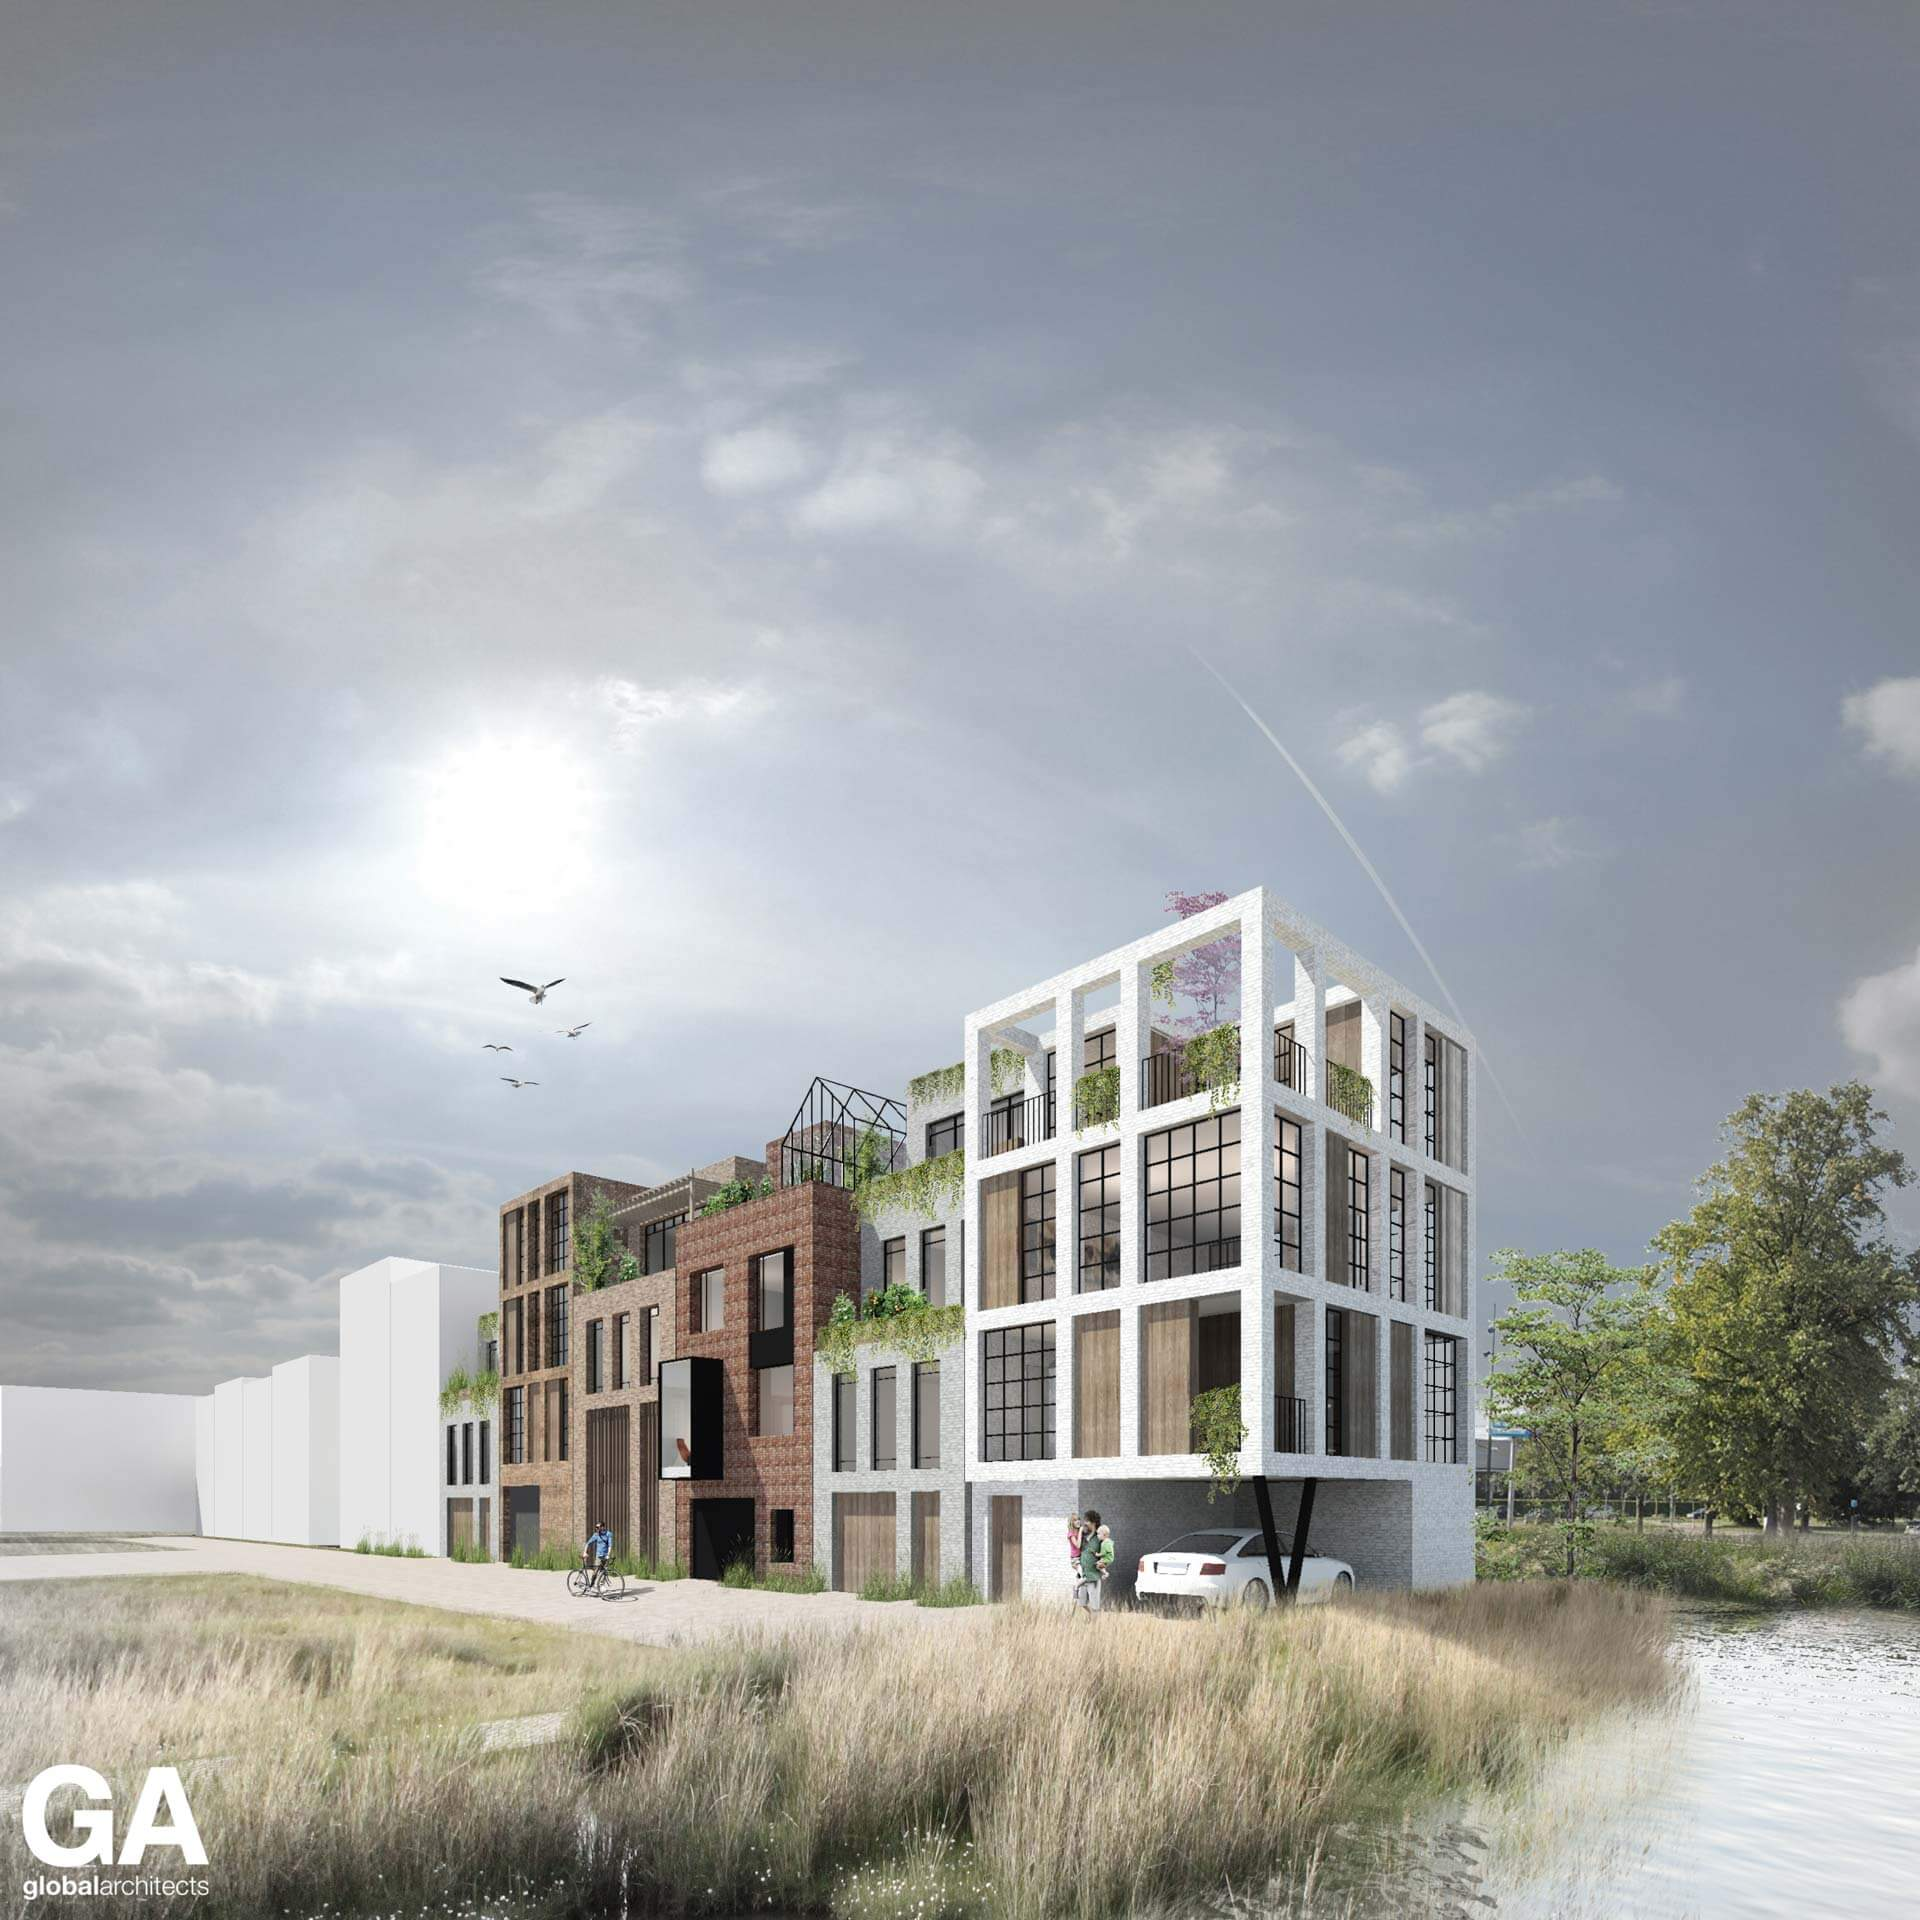 Steenvlinder Leiden Global Architects Nijverheid DN20 DN21 DN22 DN23 DN24